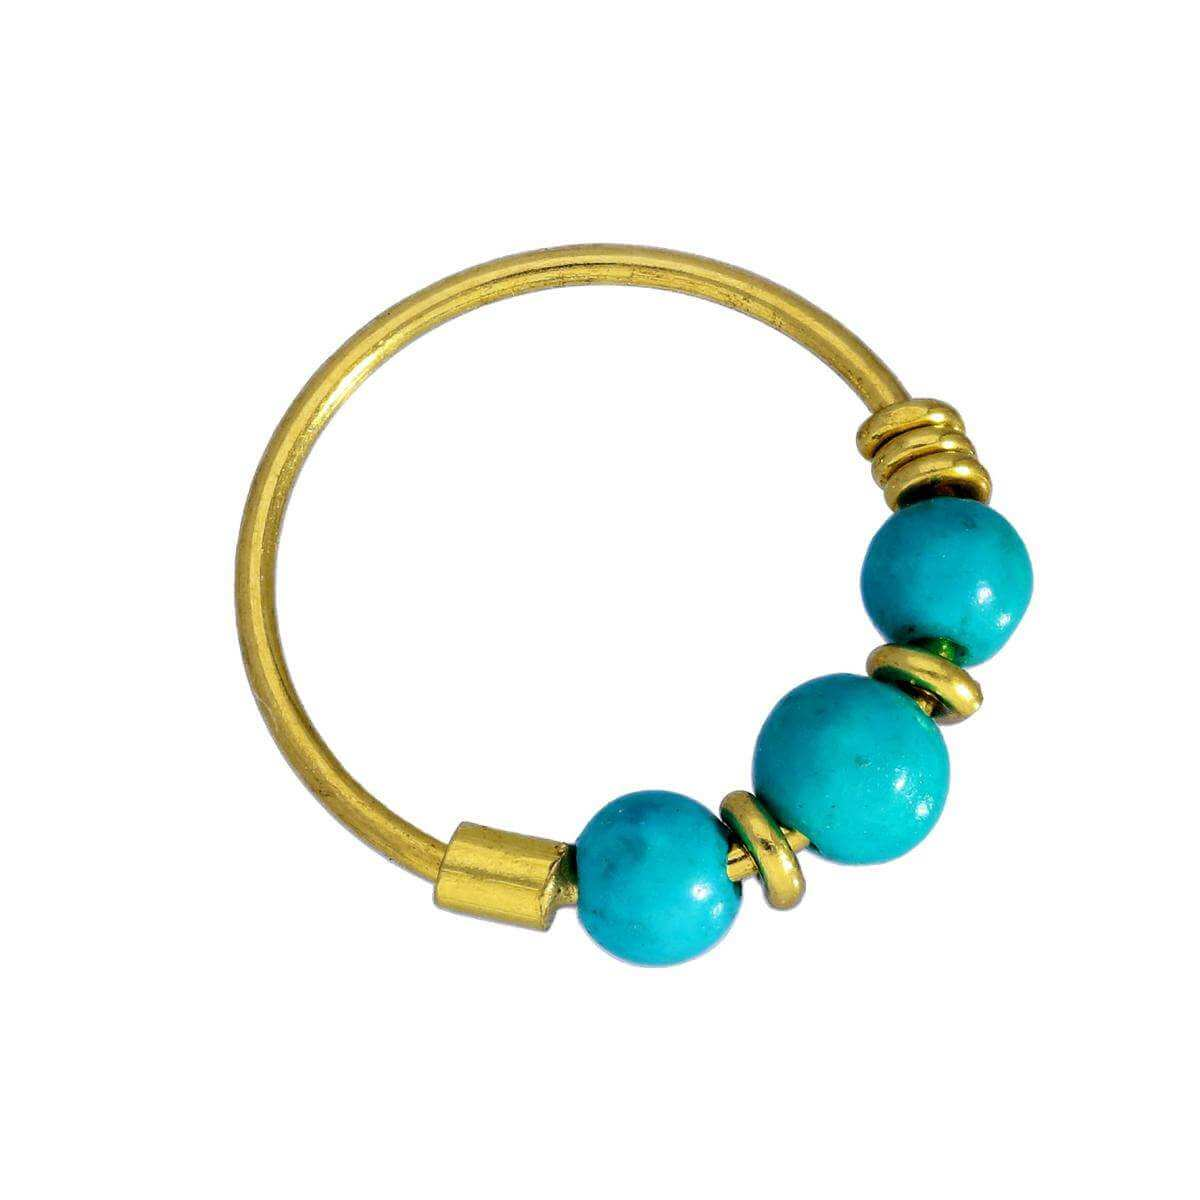 9ct Gold Turquoise Beads Nose Ring Jewellerybox Co Uk